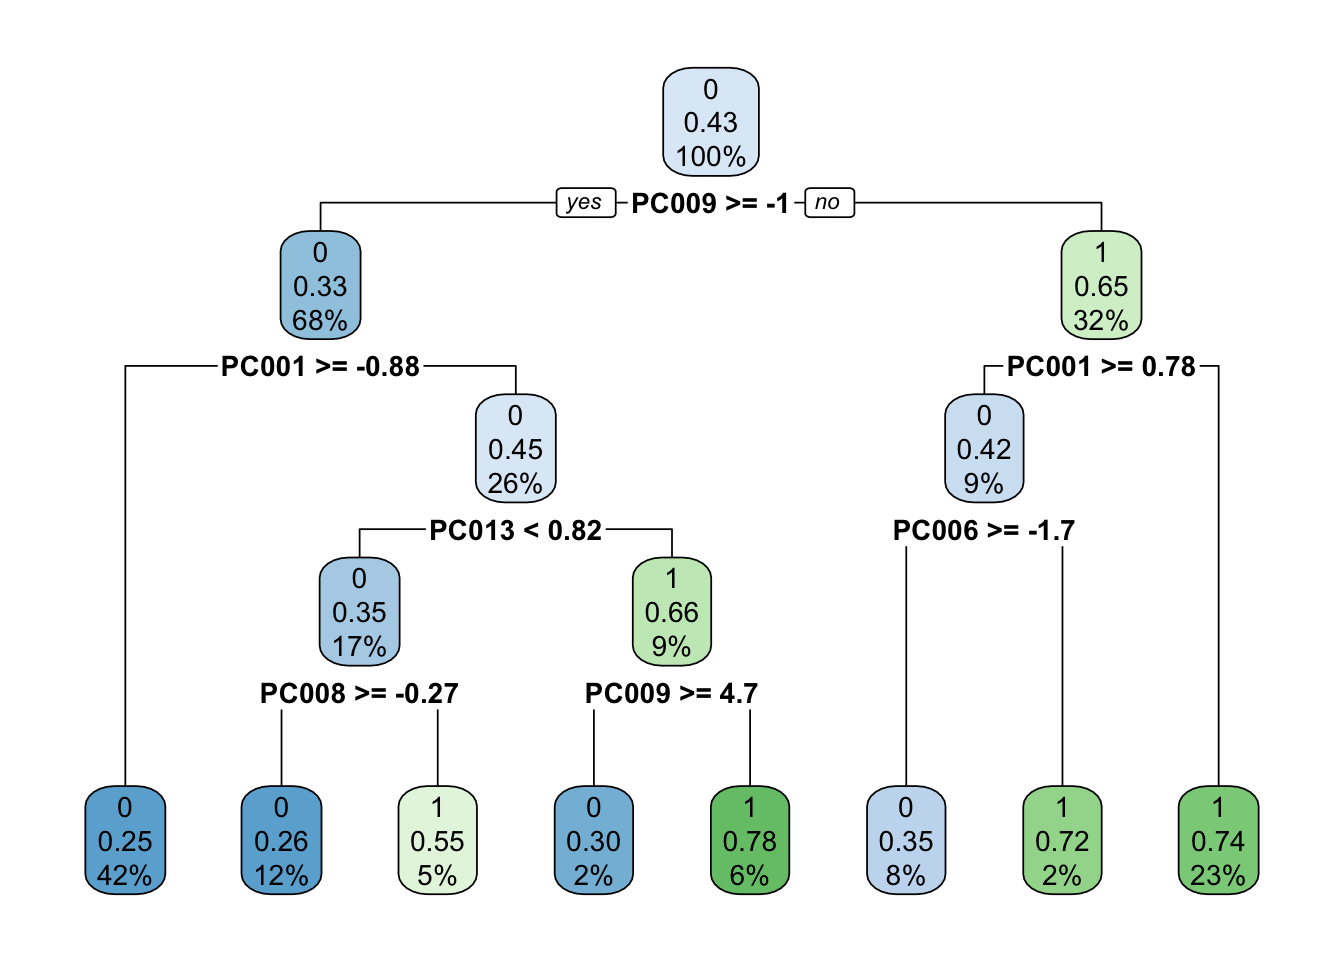 NLP with Disaster Tweets: Part 4 Tree-based Models